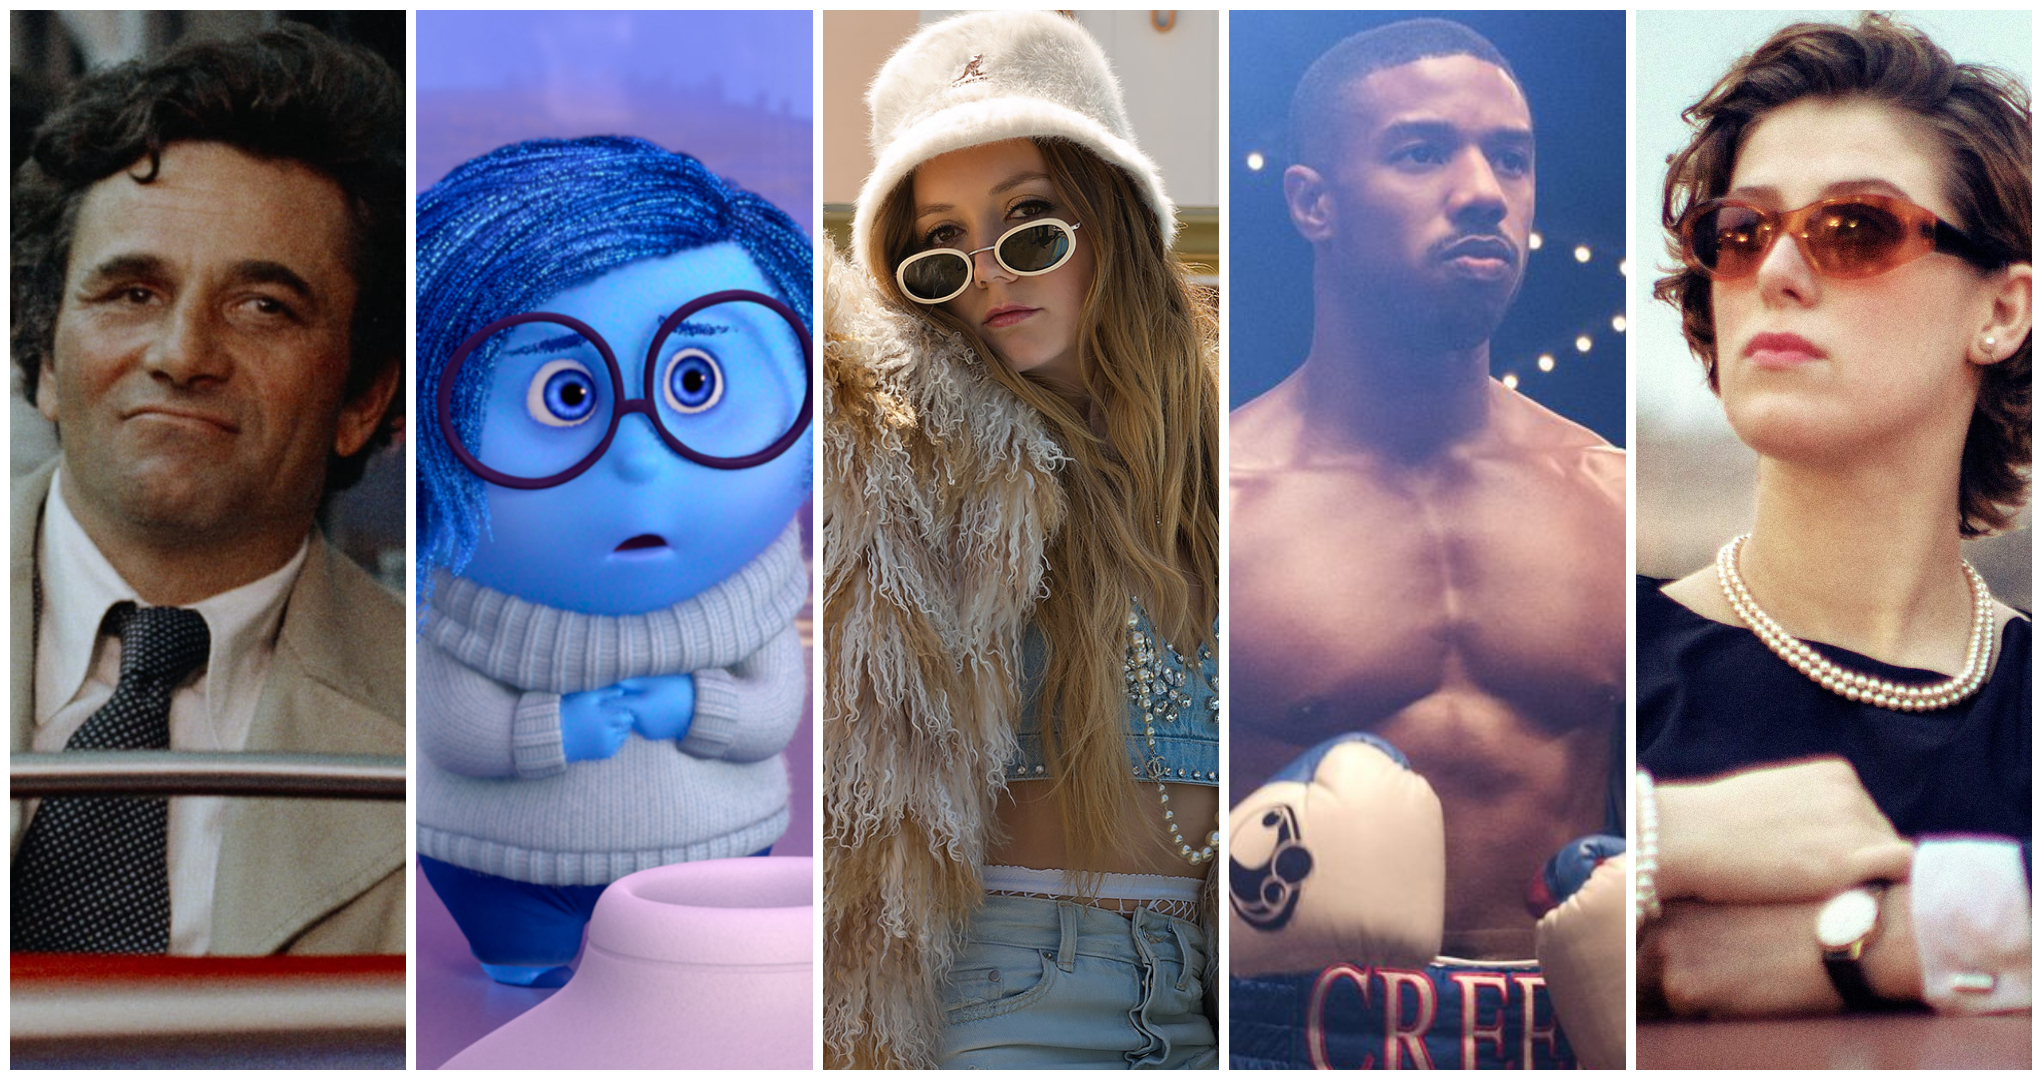 Now Stream This: 'Booksmart', 'Mikey and Nicky', 'Inside Out', 'Drive', 'Creed II', 'The Souvenir' and More